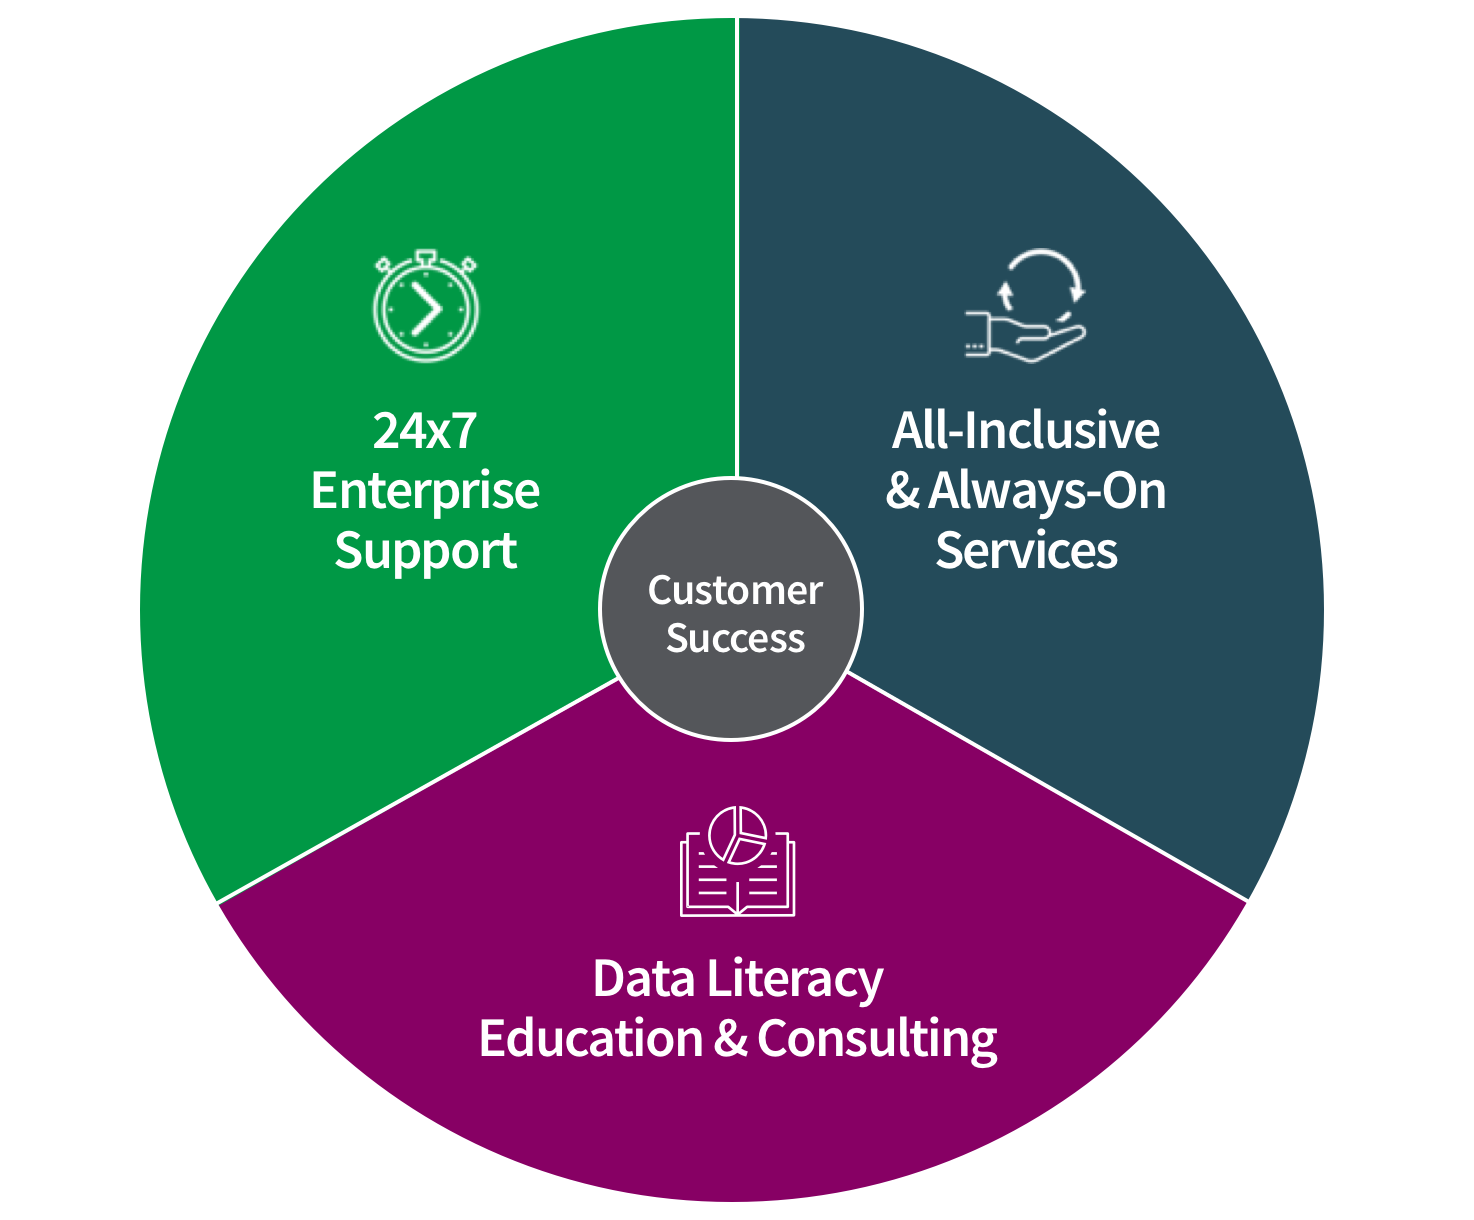 Data Literacy as a Service